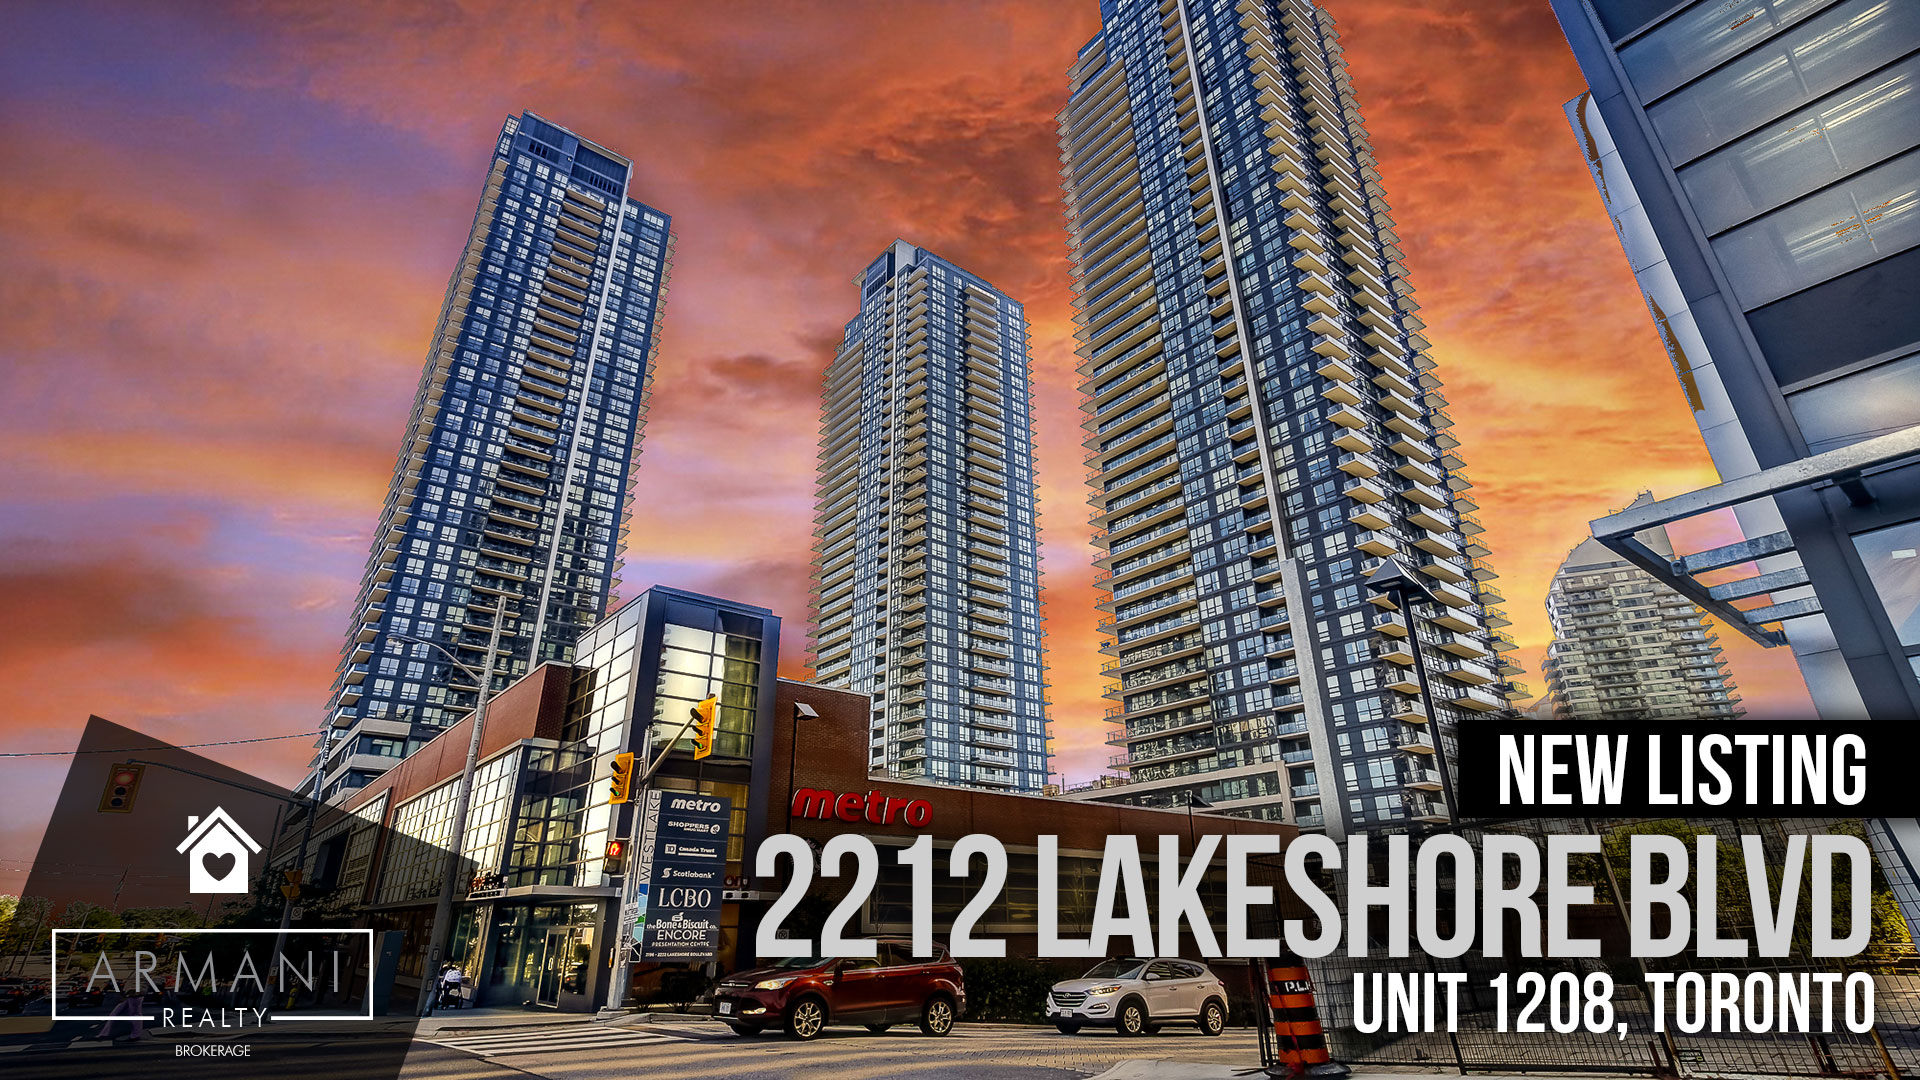 JUST LISTED! 2212 Lakeshore Blvd W #1208 in South Etobicoke